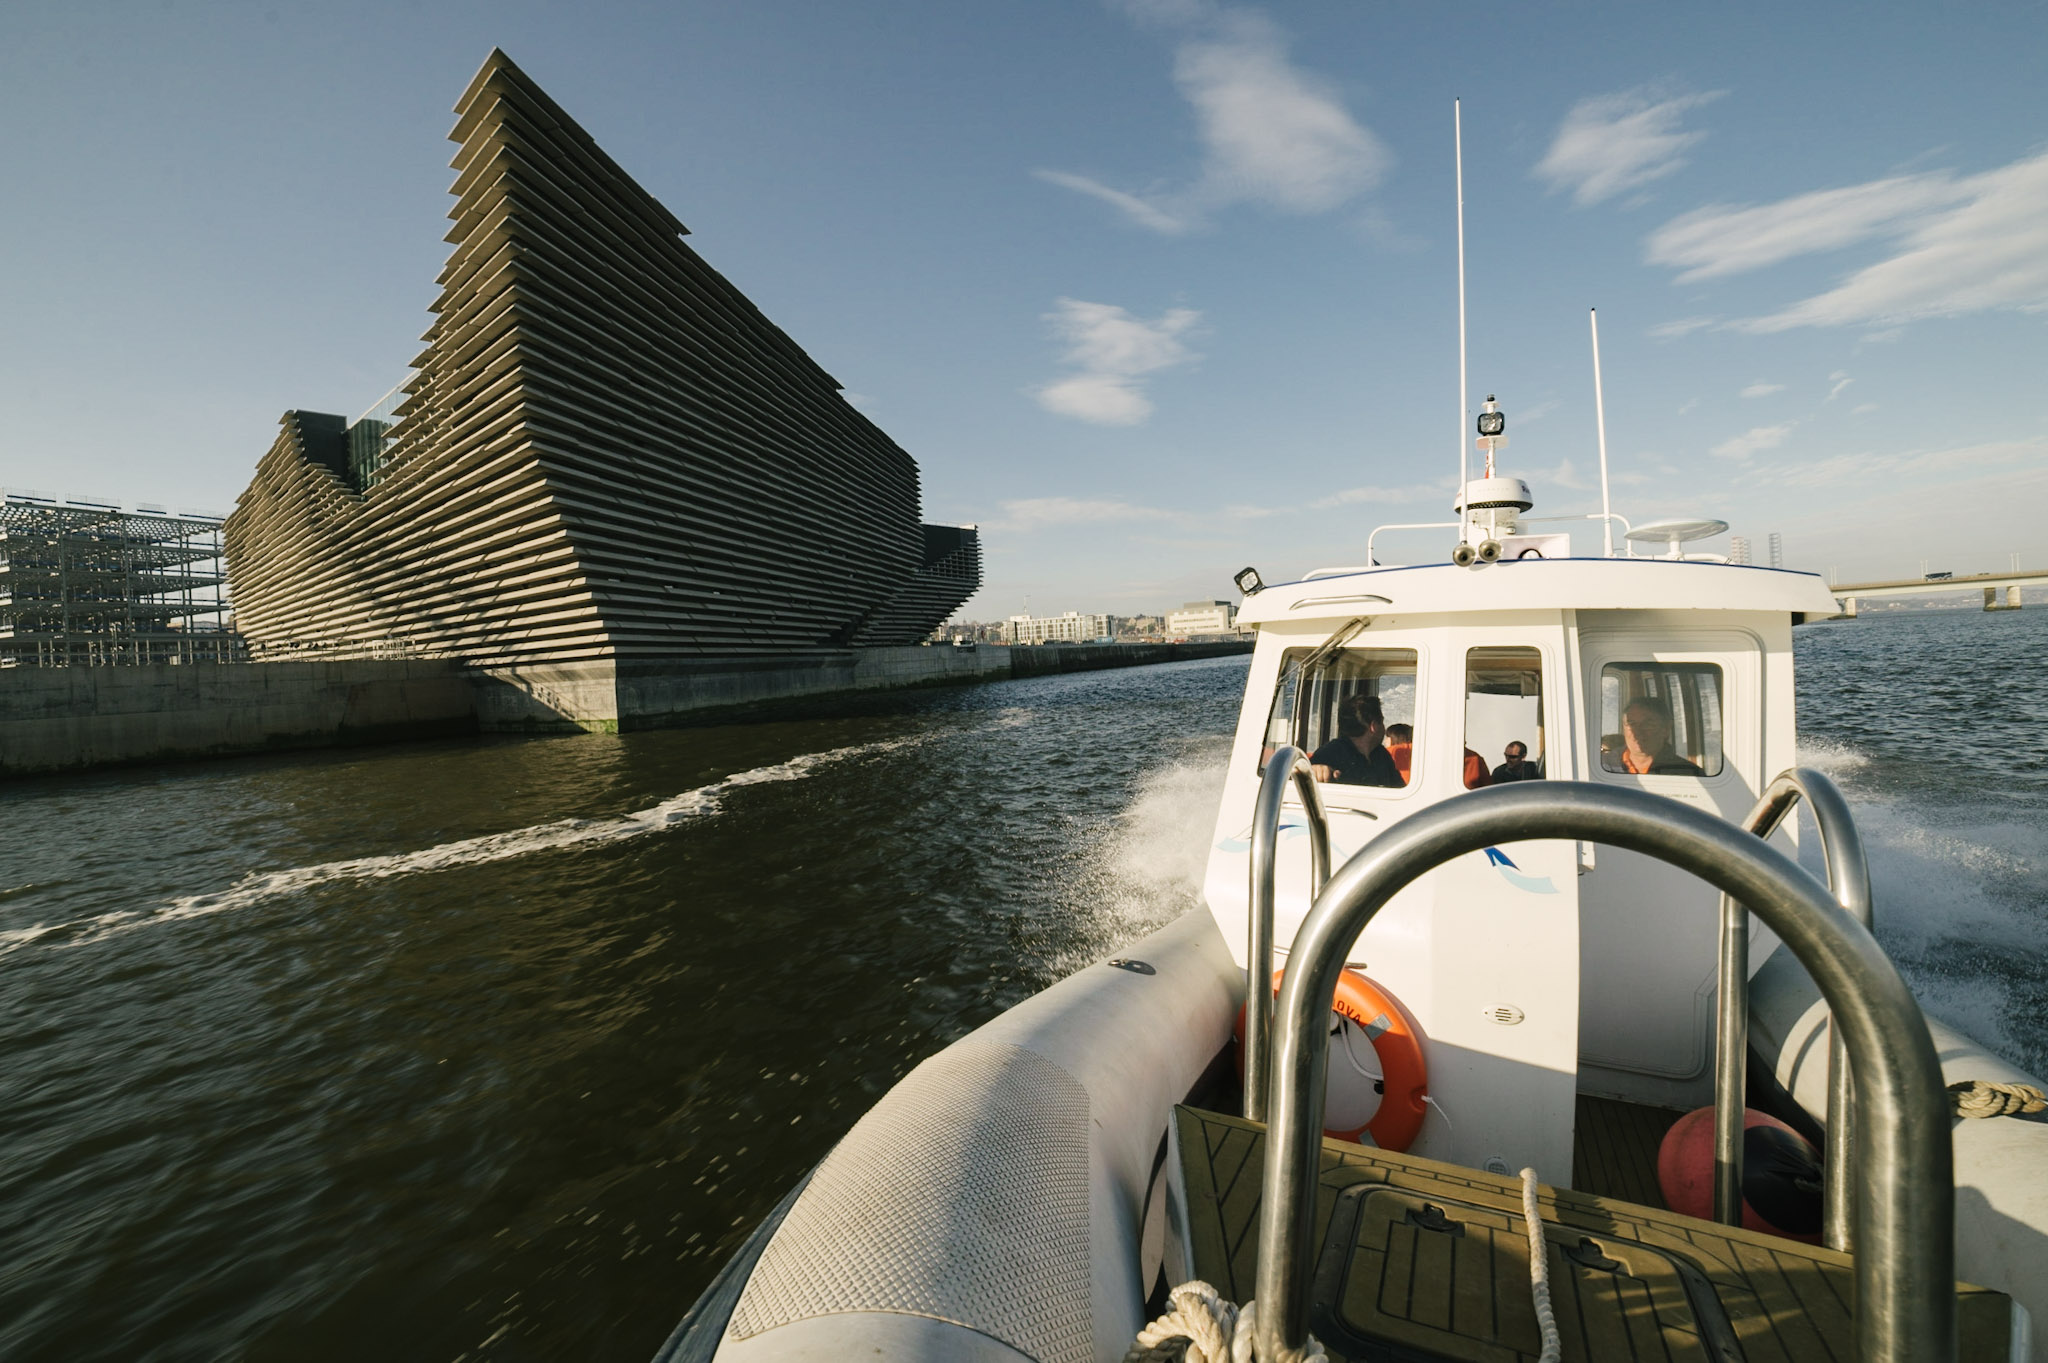 Tay Tours - Explore the river Tay in comfort, style aboard our high speed vessel, Terra Nova.